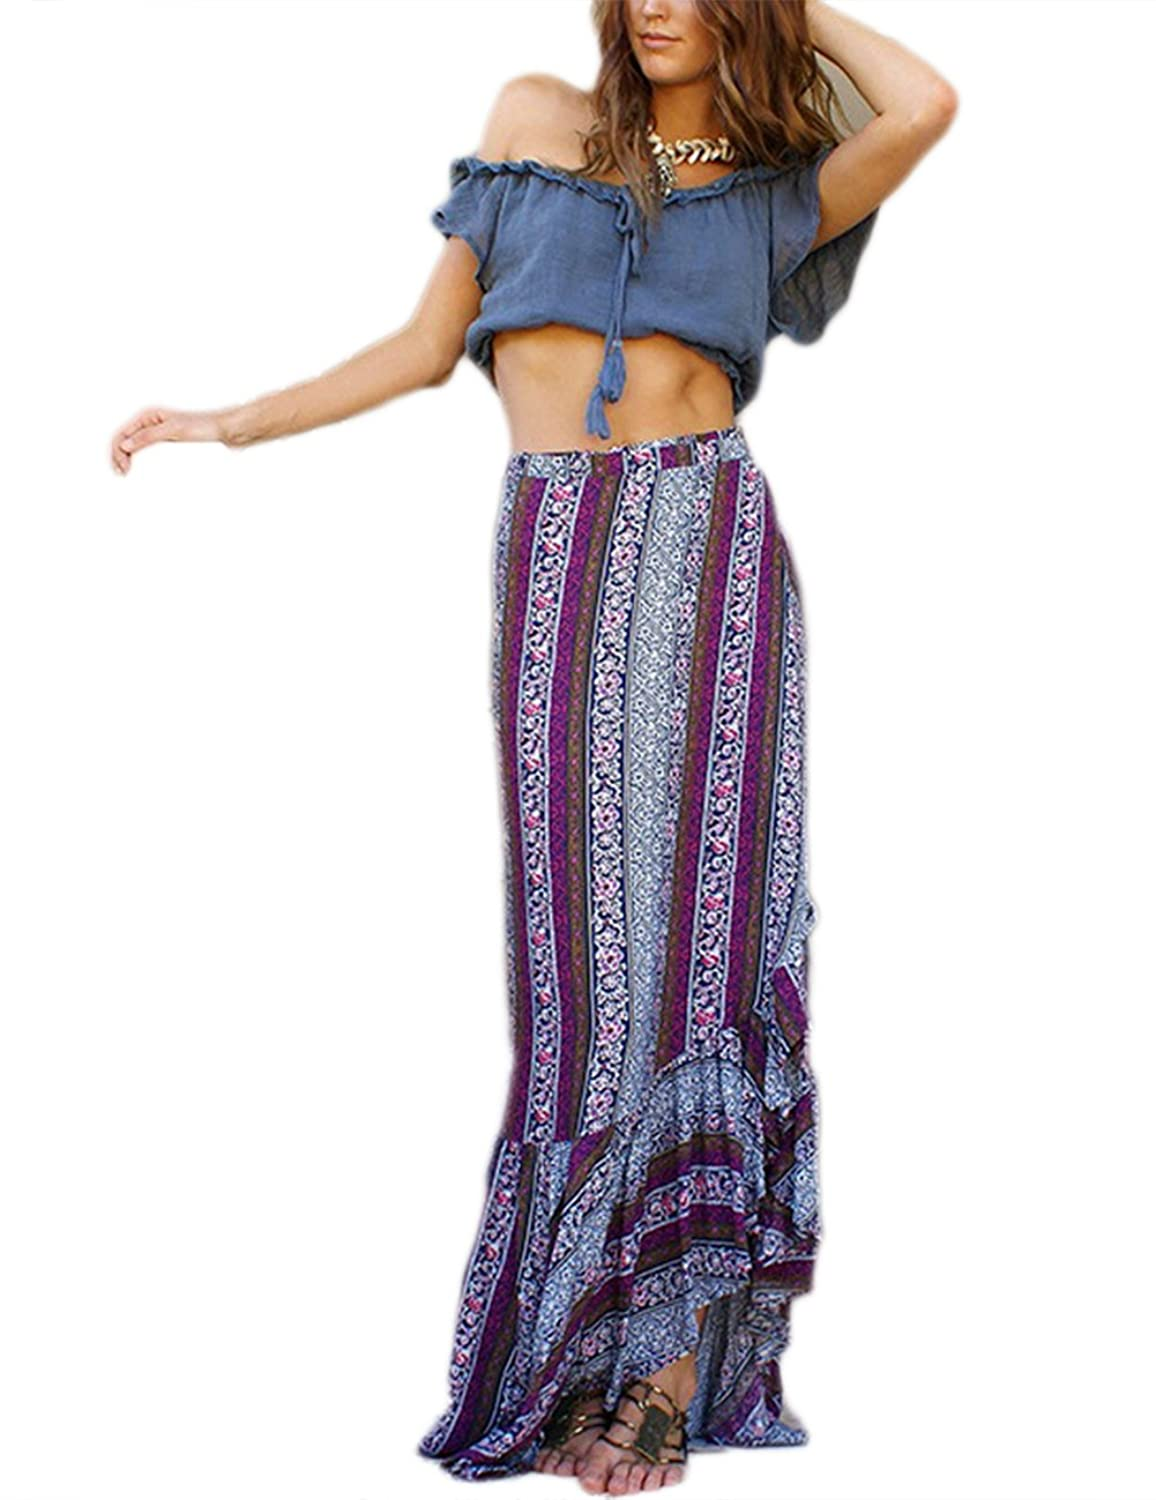 d6e3290180b One Size(inch)  Waist 23.62-35.43 Length 37.4 fit US Size XS-L Sarong wrap-style  print maxi skirt for beach. Long skirt with print pattern